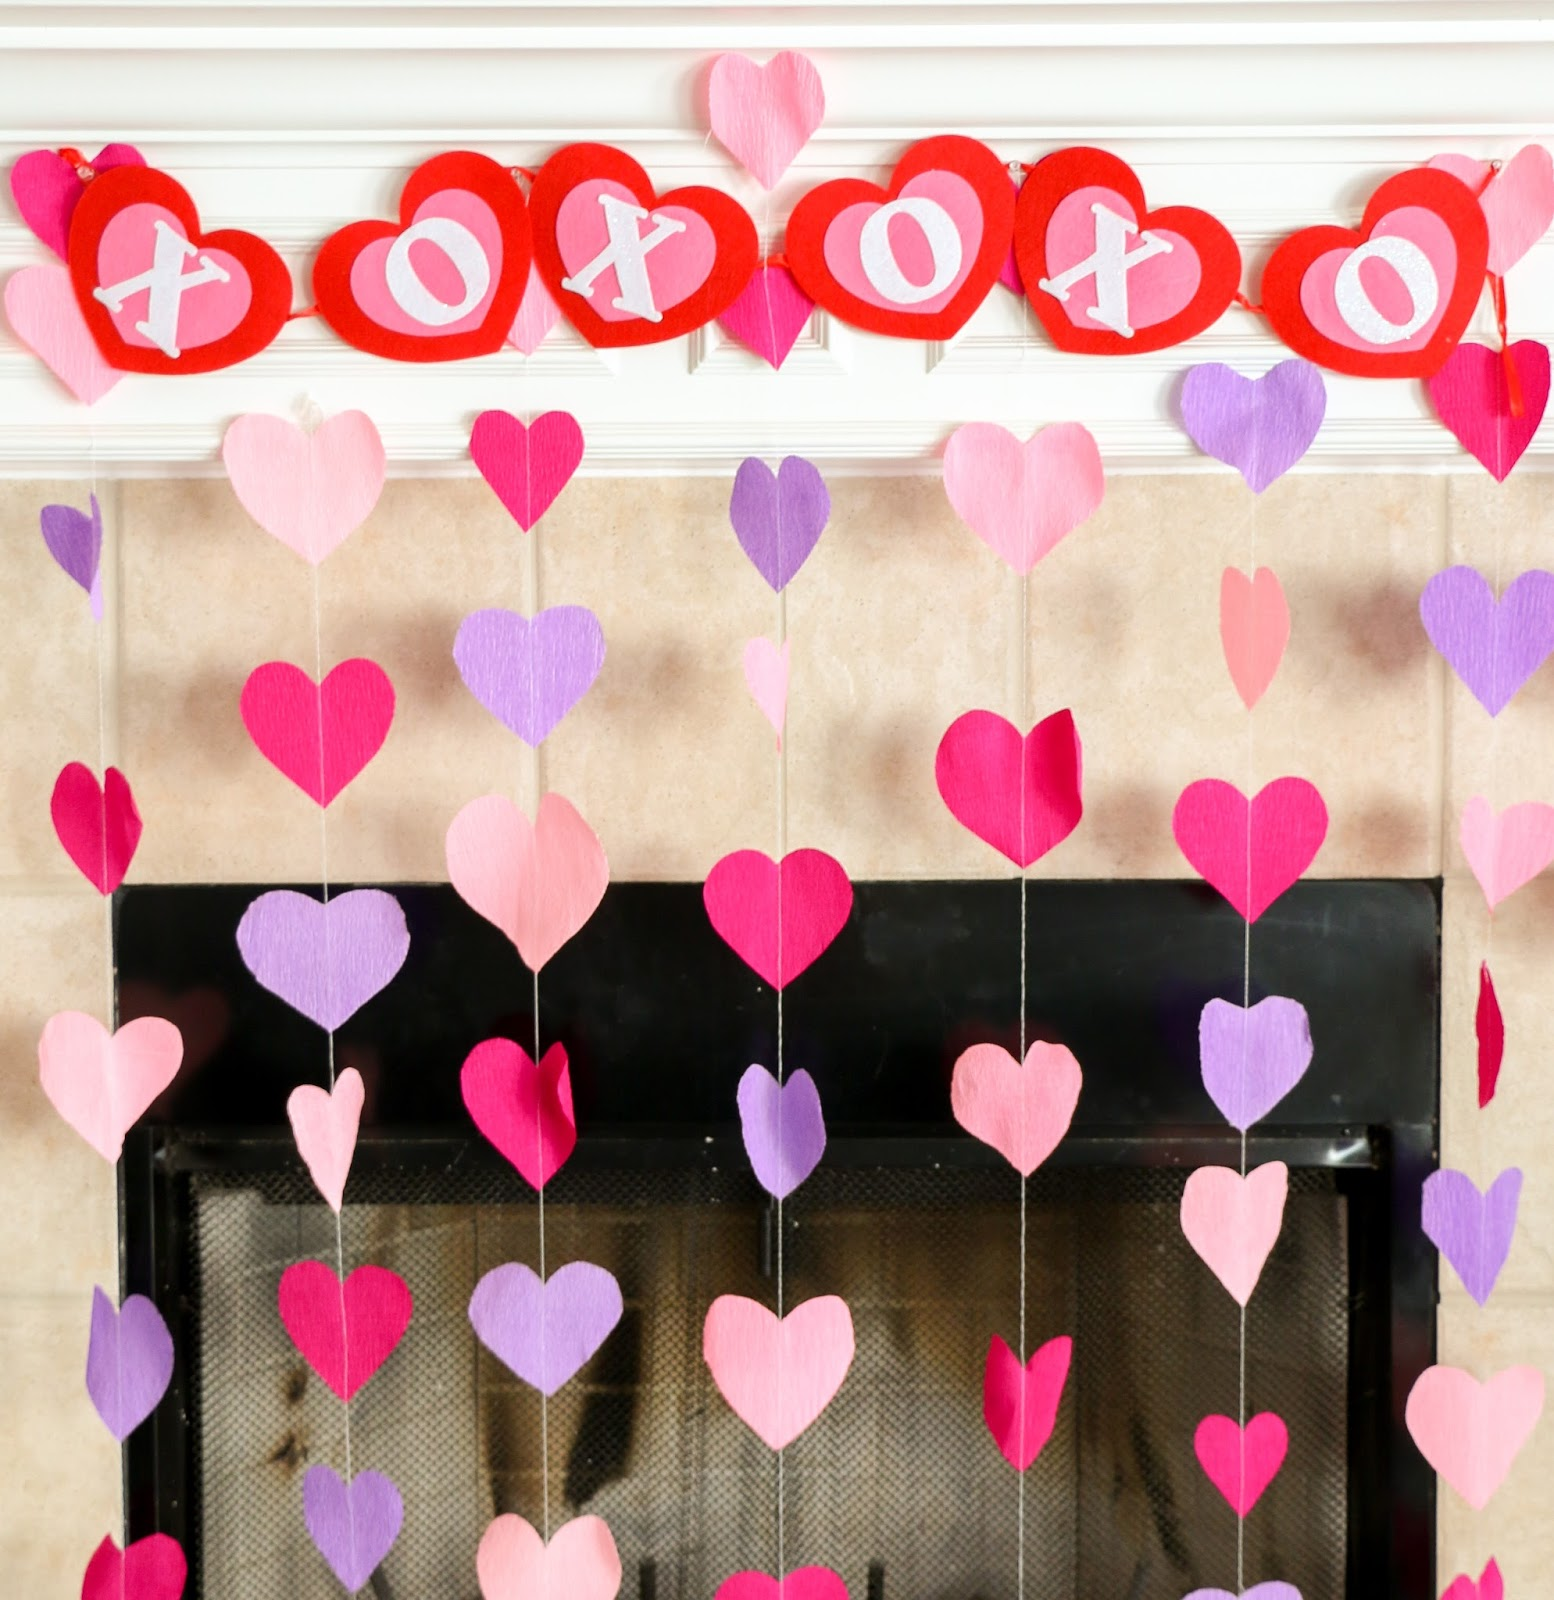 Diy it crepe paper heart decorations a kailo chic life for Heart decoration ideas